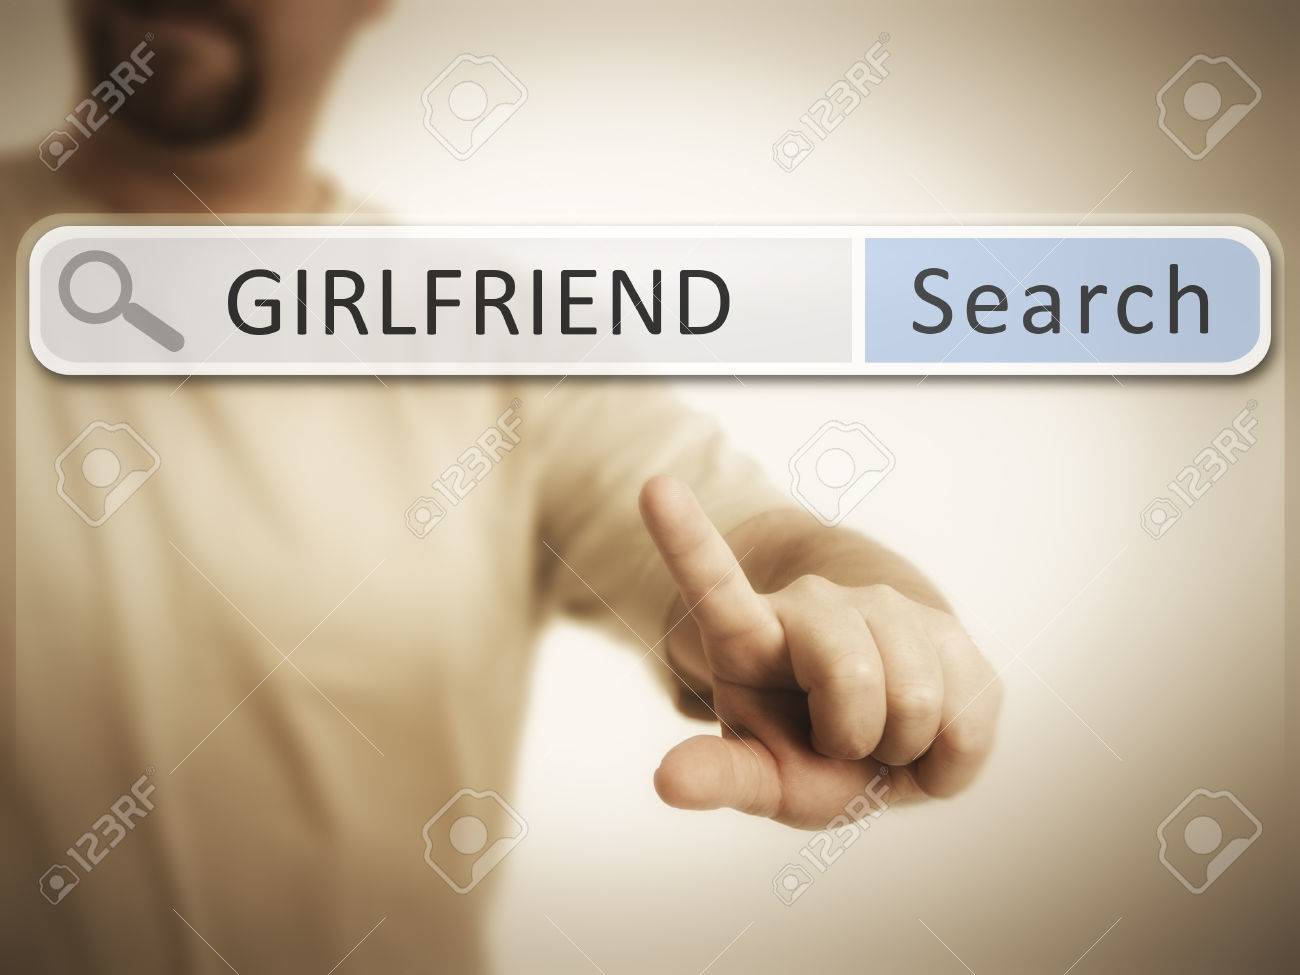 Search girlfriend number